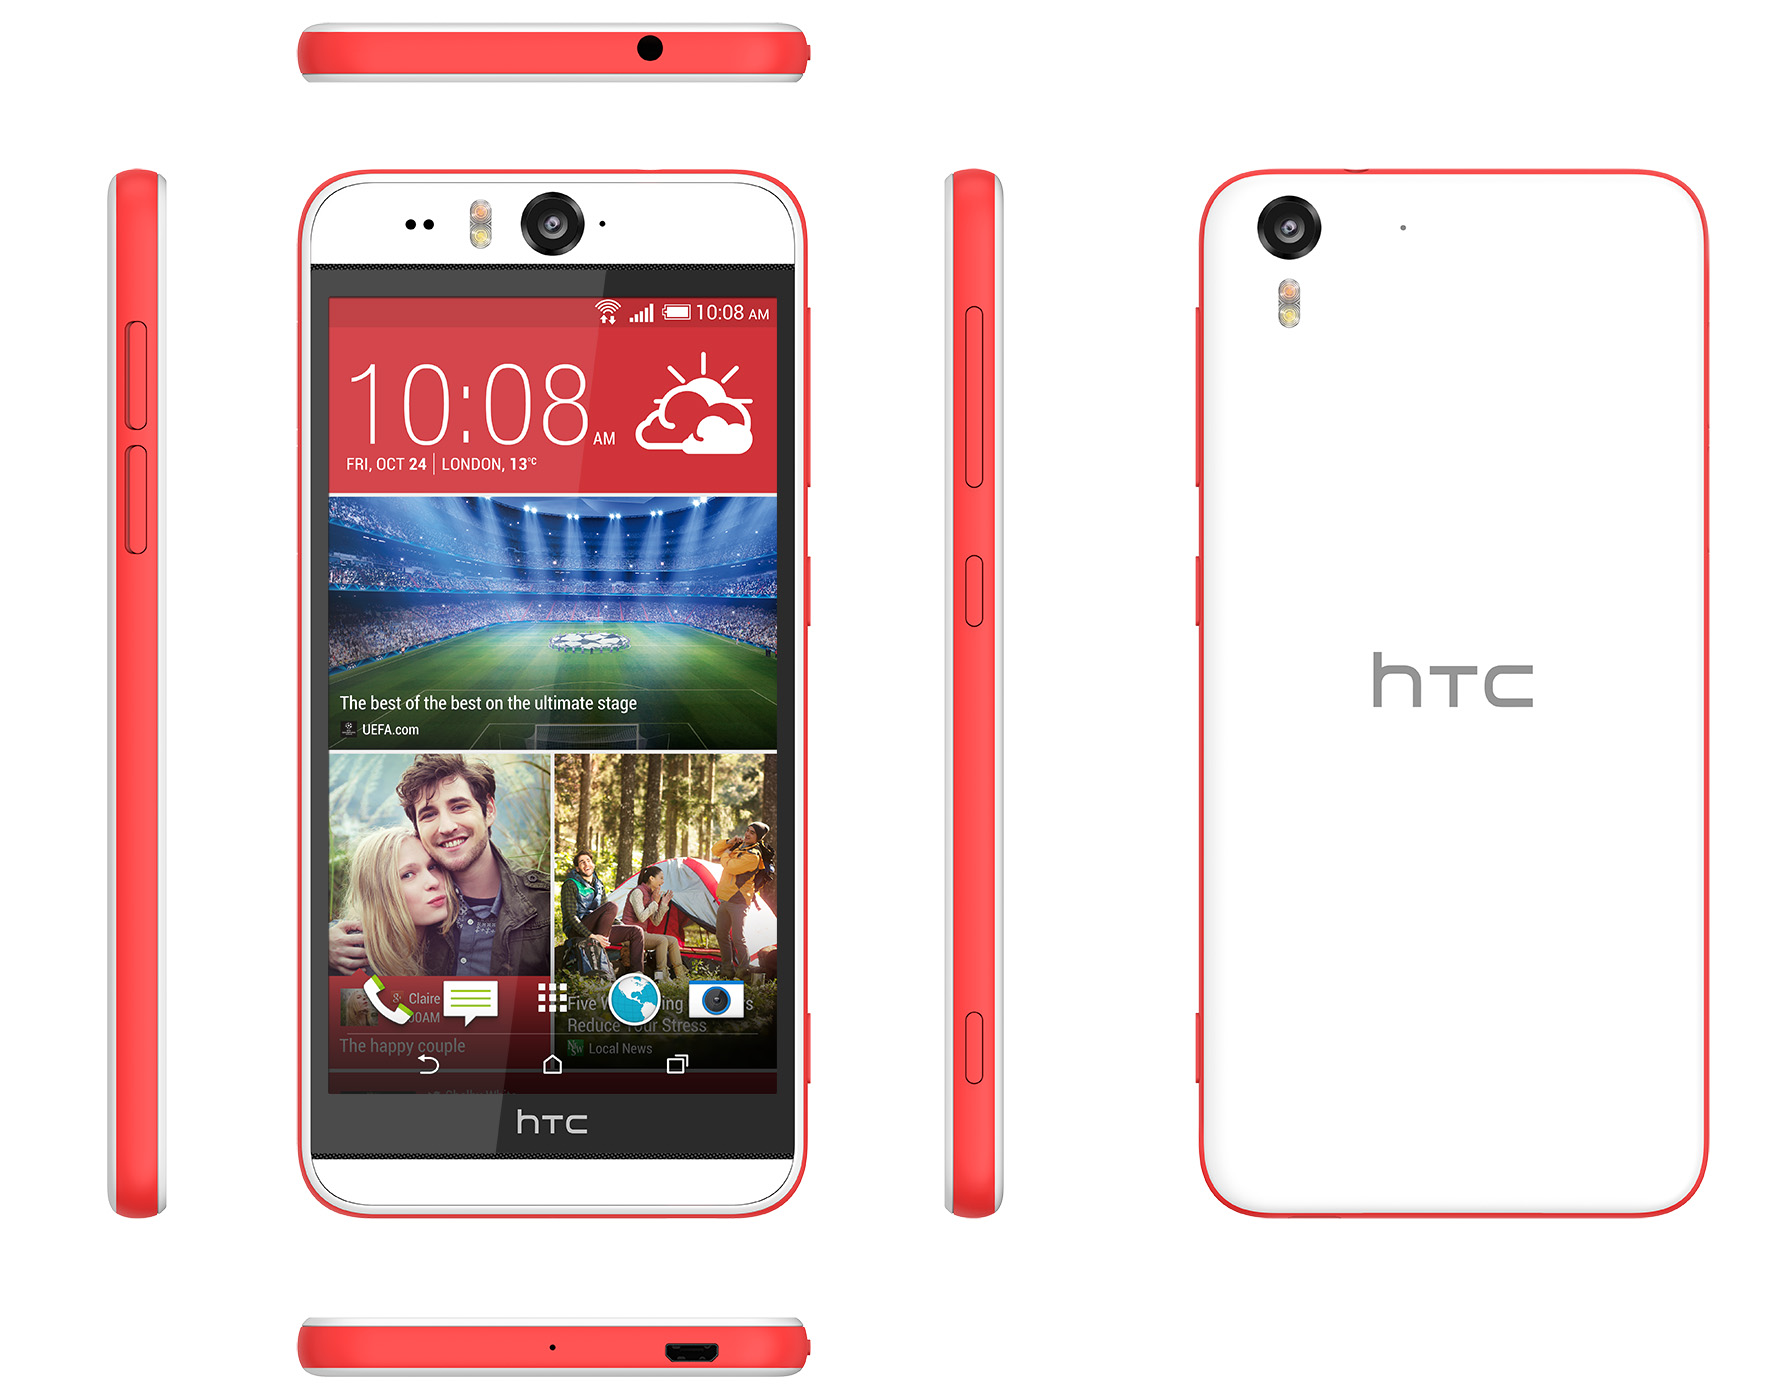 HTC Desire Eye Matt White explosion 300 dpi.jpg